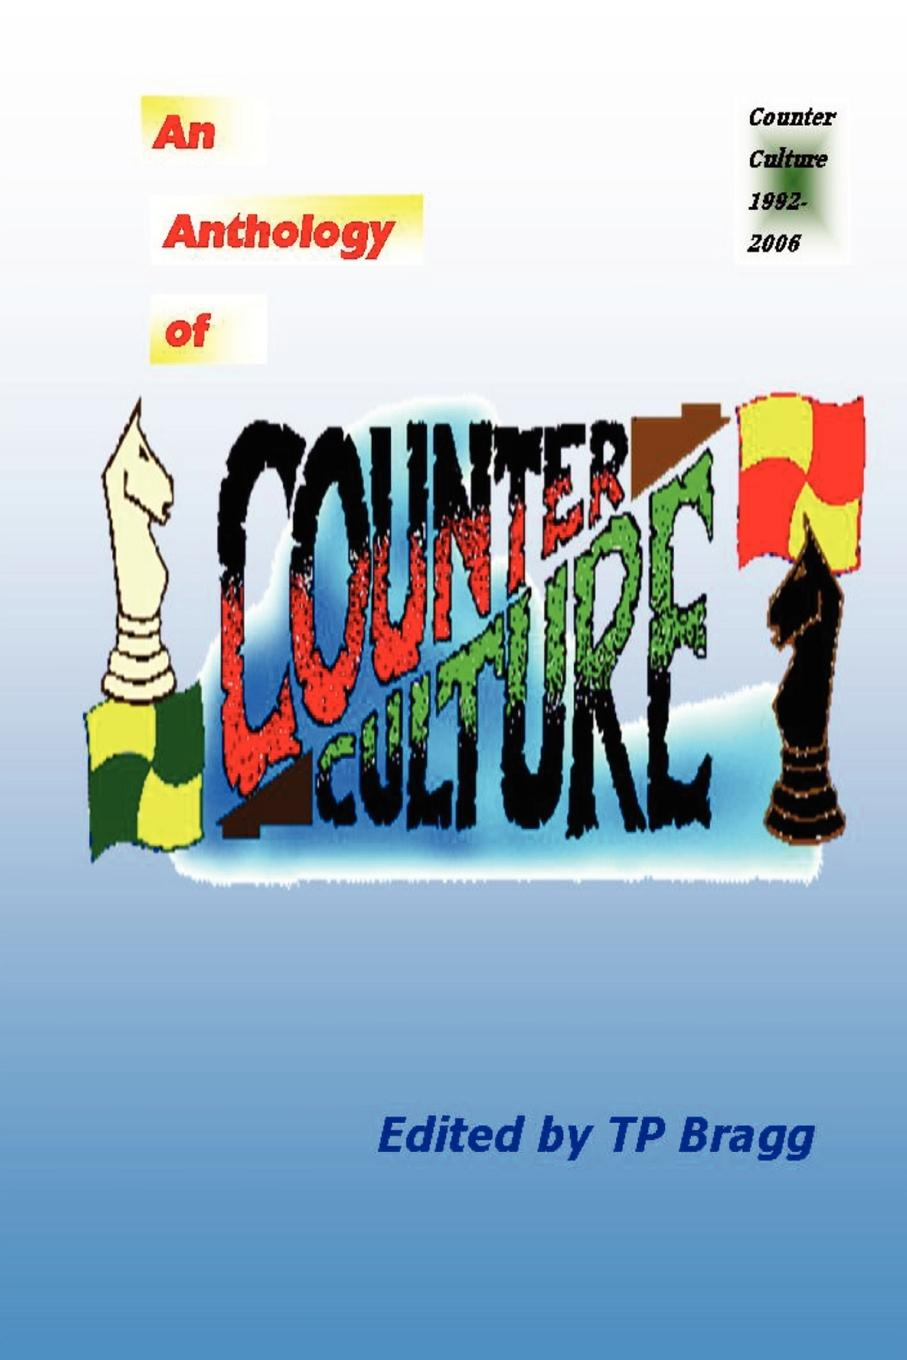 Patrick Harrington, Terry Burgoyne Counter Culture Anthology недорго, оригинальная цена